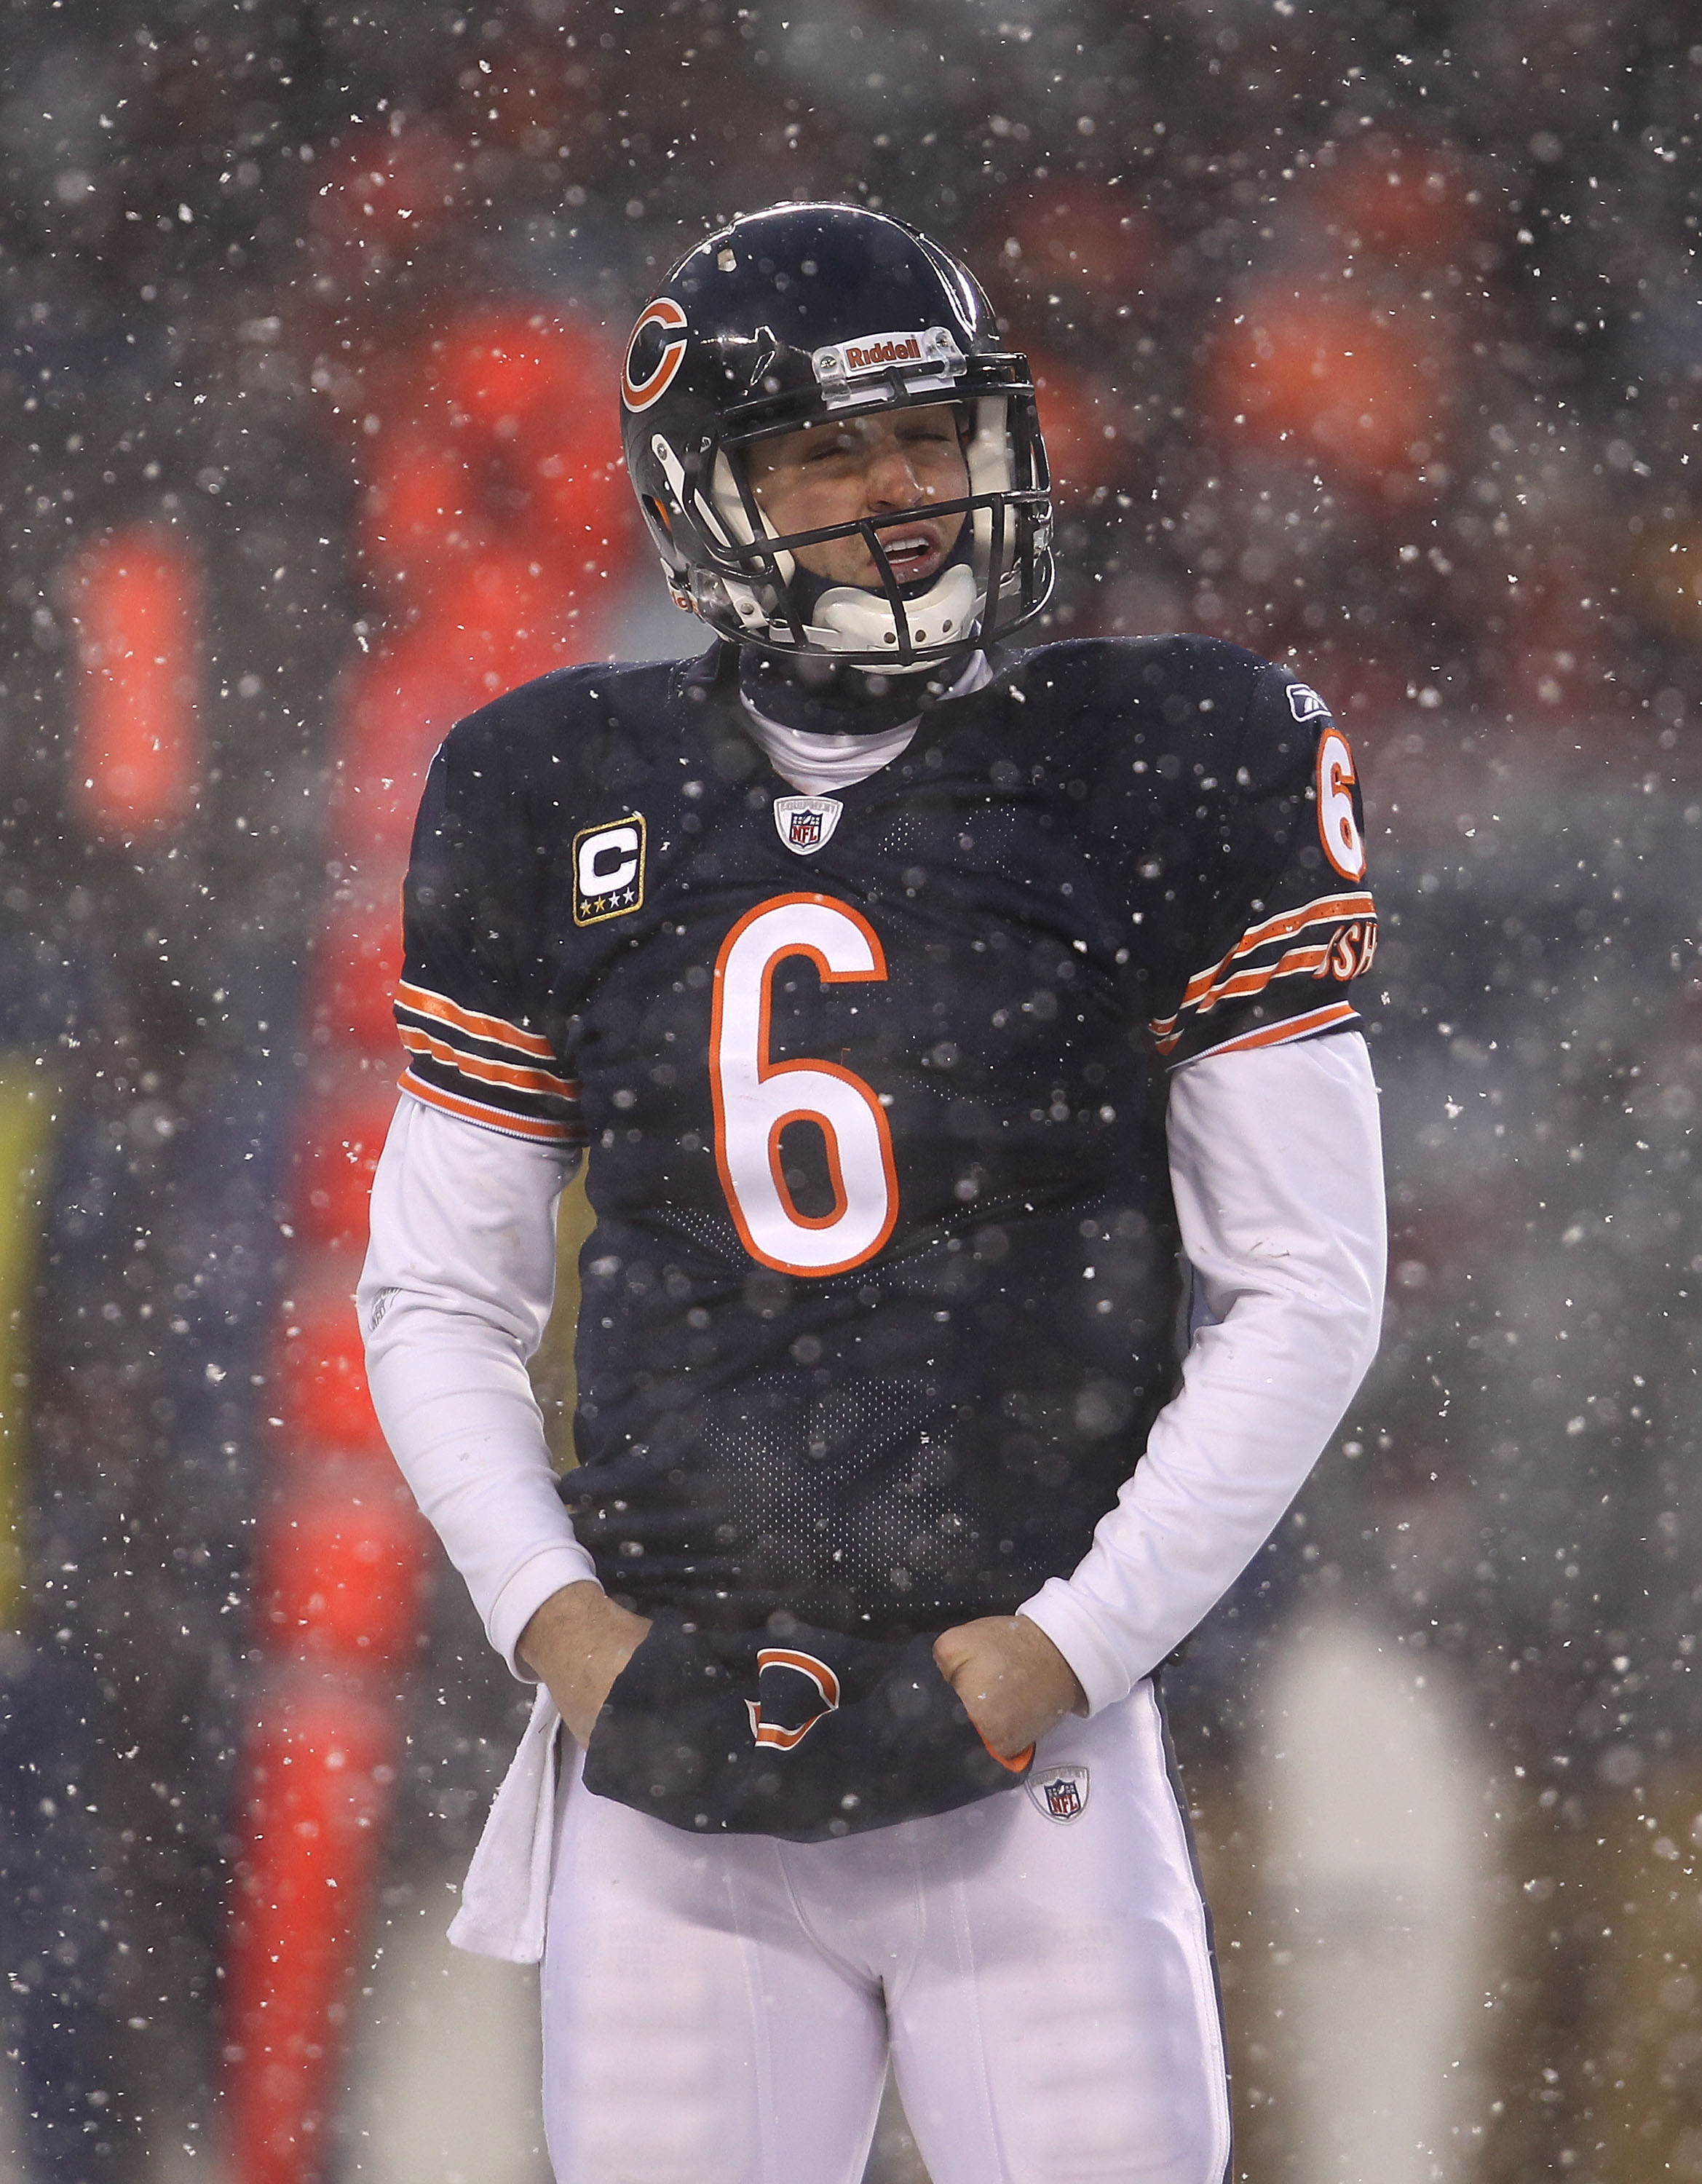 CHICAGO, IL - DECEMBER 12: Jay Cutler #6 of the Chicago Bears reacts after a player from the New England Patriots runs a fumbled ball into the end zone for a touchdown at Soldier Field on December 12, 2010 in Chicago, Illinois. The Patriots defeated the B